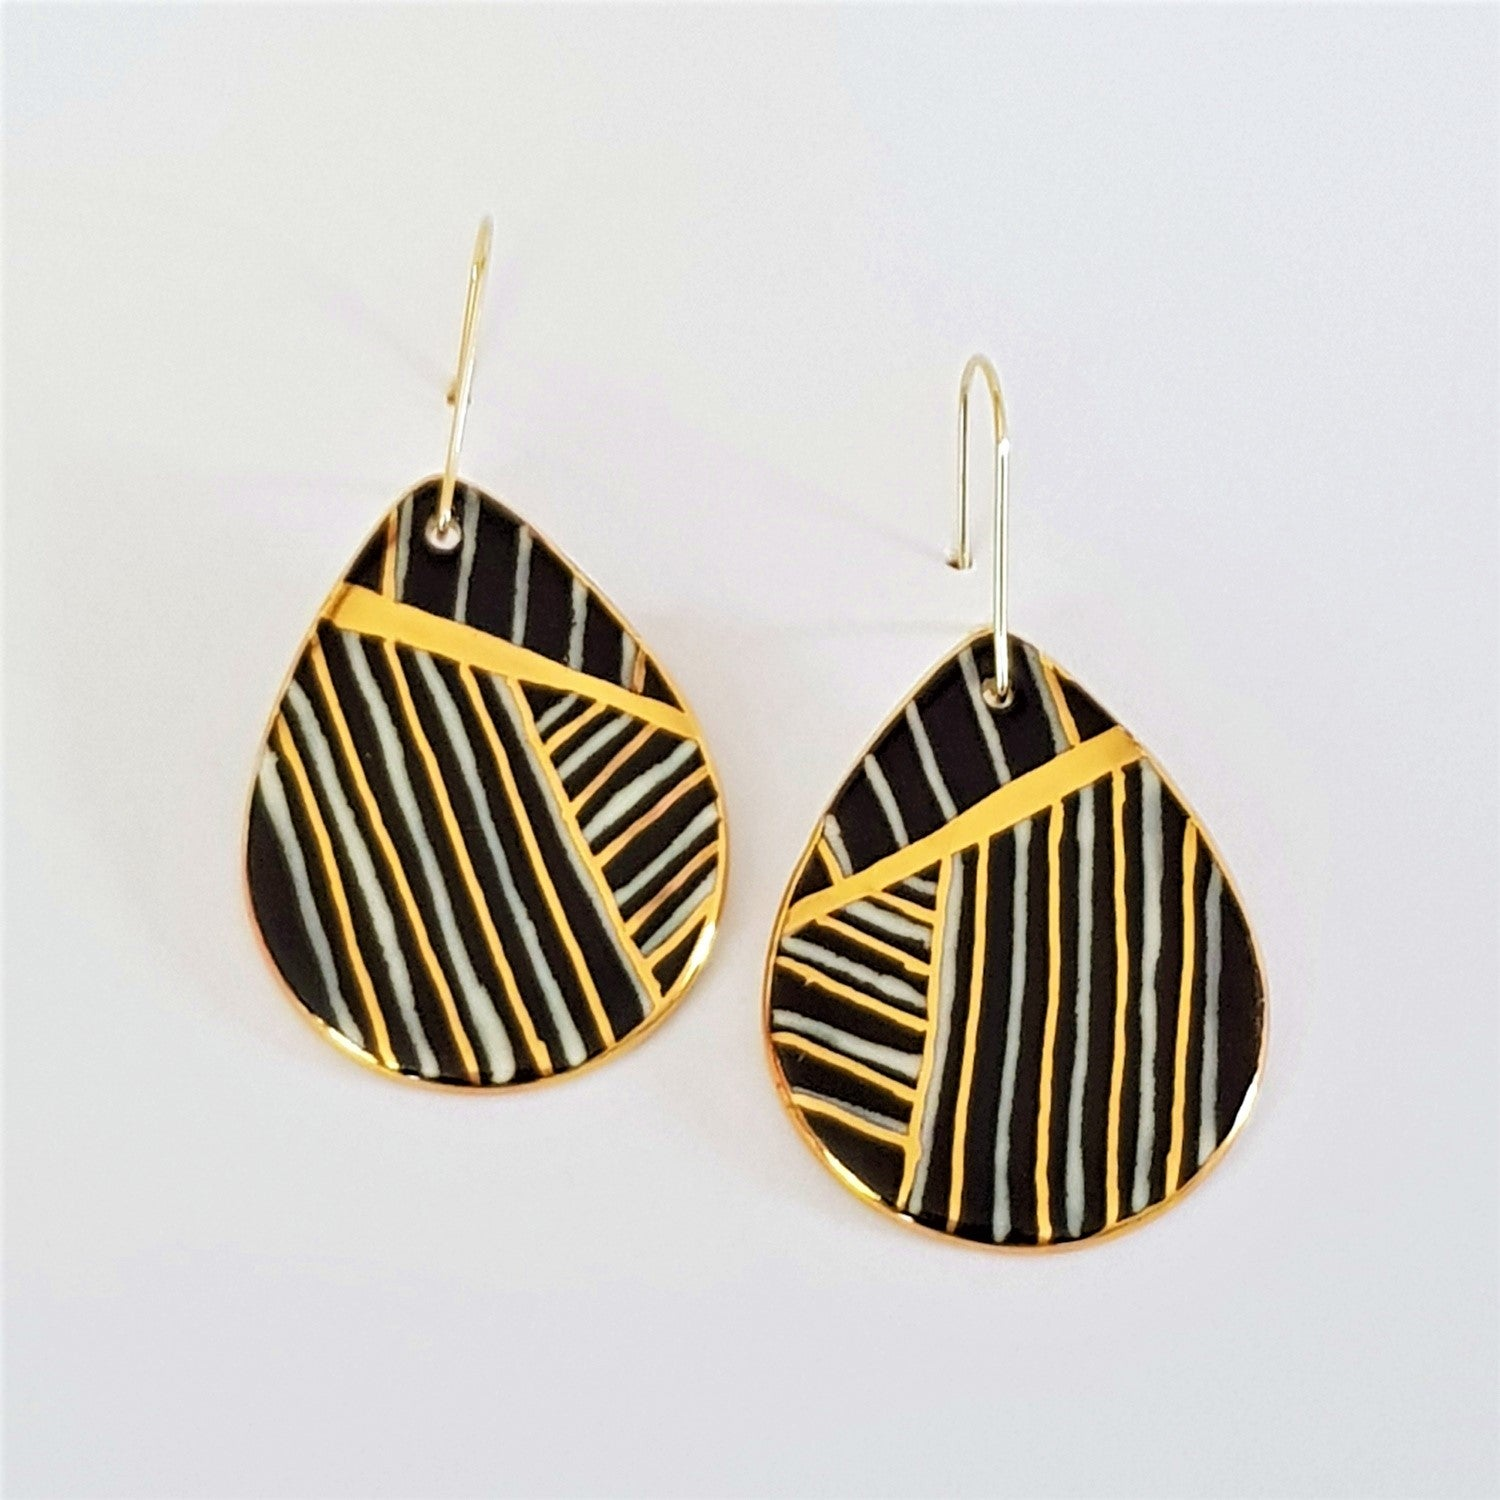 porcelain drop earrings - black and white with gold stripes